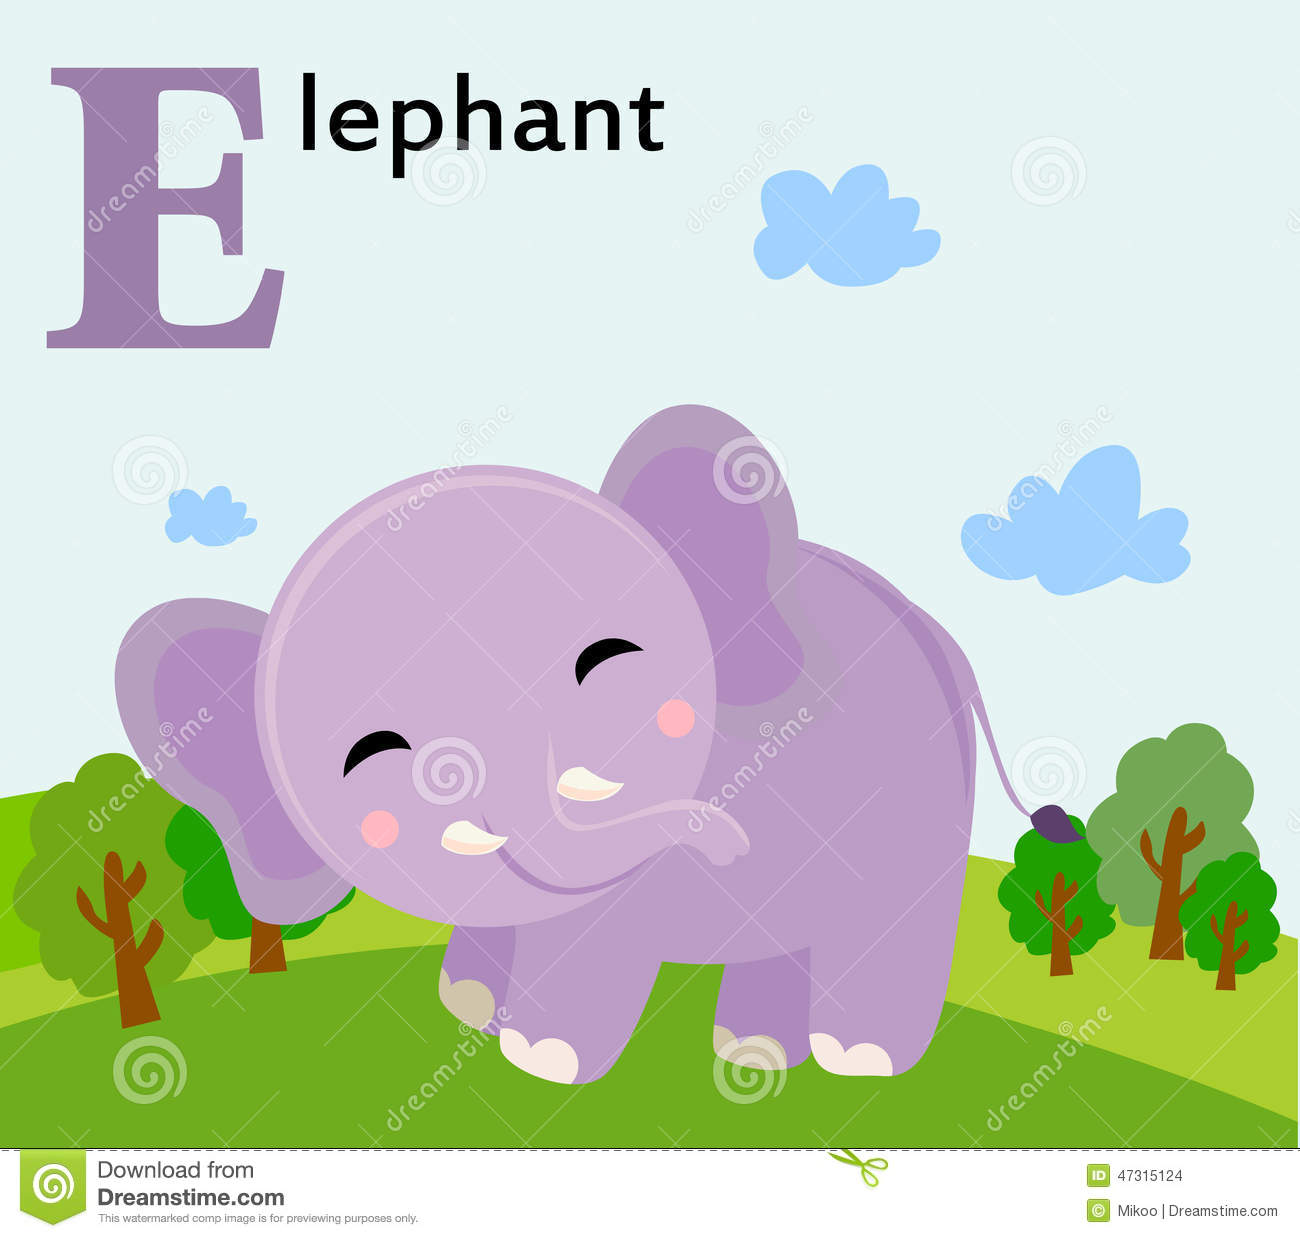 Stock Illustration Animal Alphabet Kids E Elephant Illustration Image47315124 on Letter Z Pictures For Kids